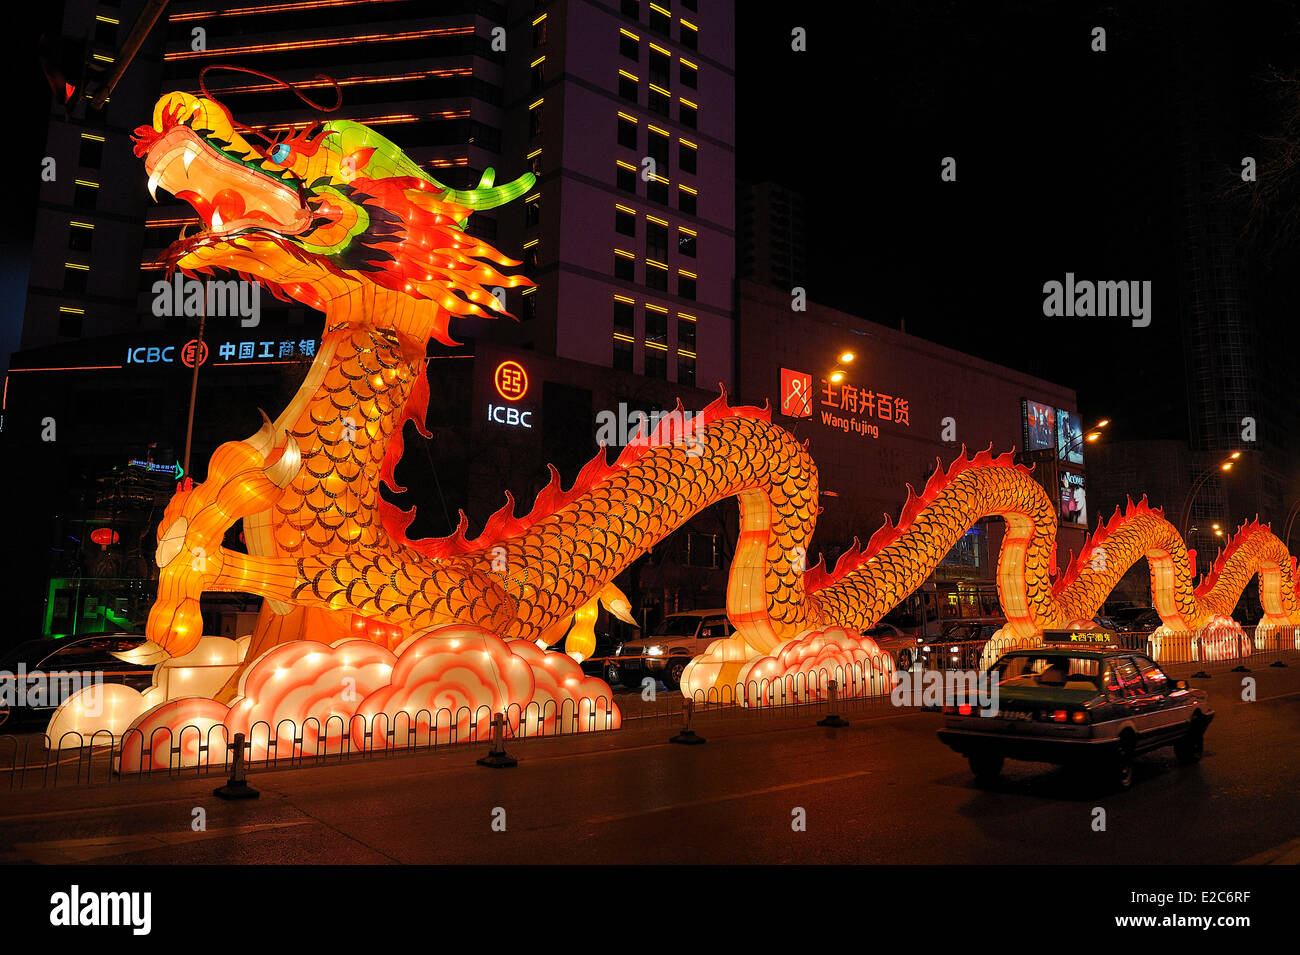 china, qinghai, xining, chinese new year festival, beleuchtete